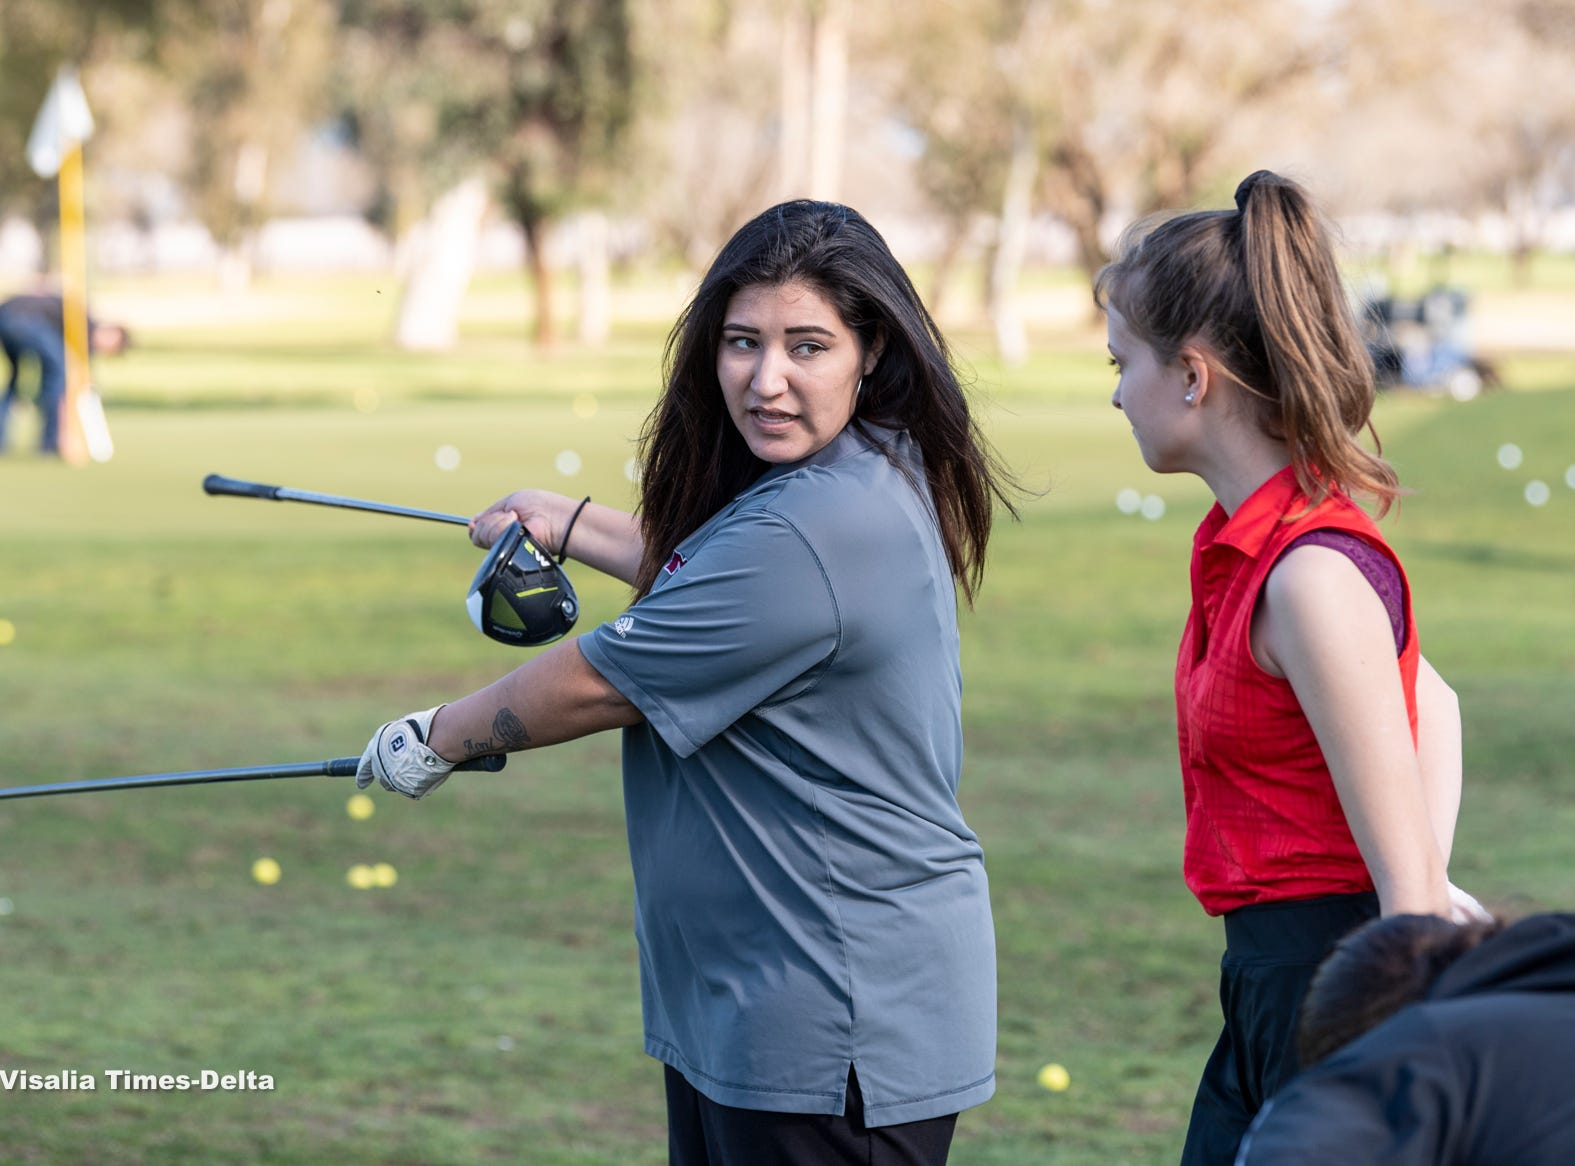 Training professionals from Backswing Golf Events and Fresno State women's golf coaches work with female golfers of all ages on Thursday, February 28, 2019. Organizers held the free event at the Tulare Golf Course to help grow the game of golf in the Central Valley.